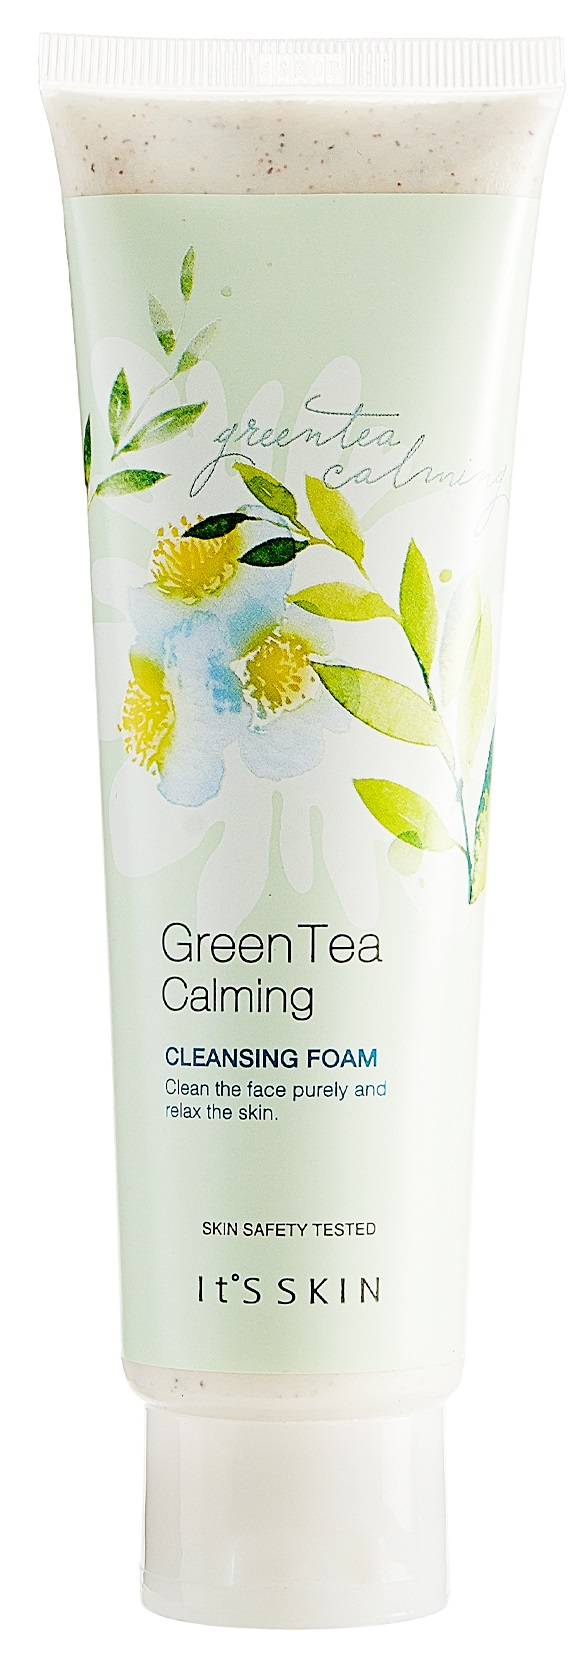 Green-Tea-Calming-Cleansing-Foam